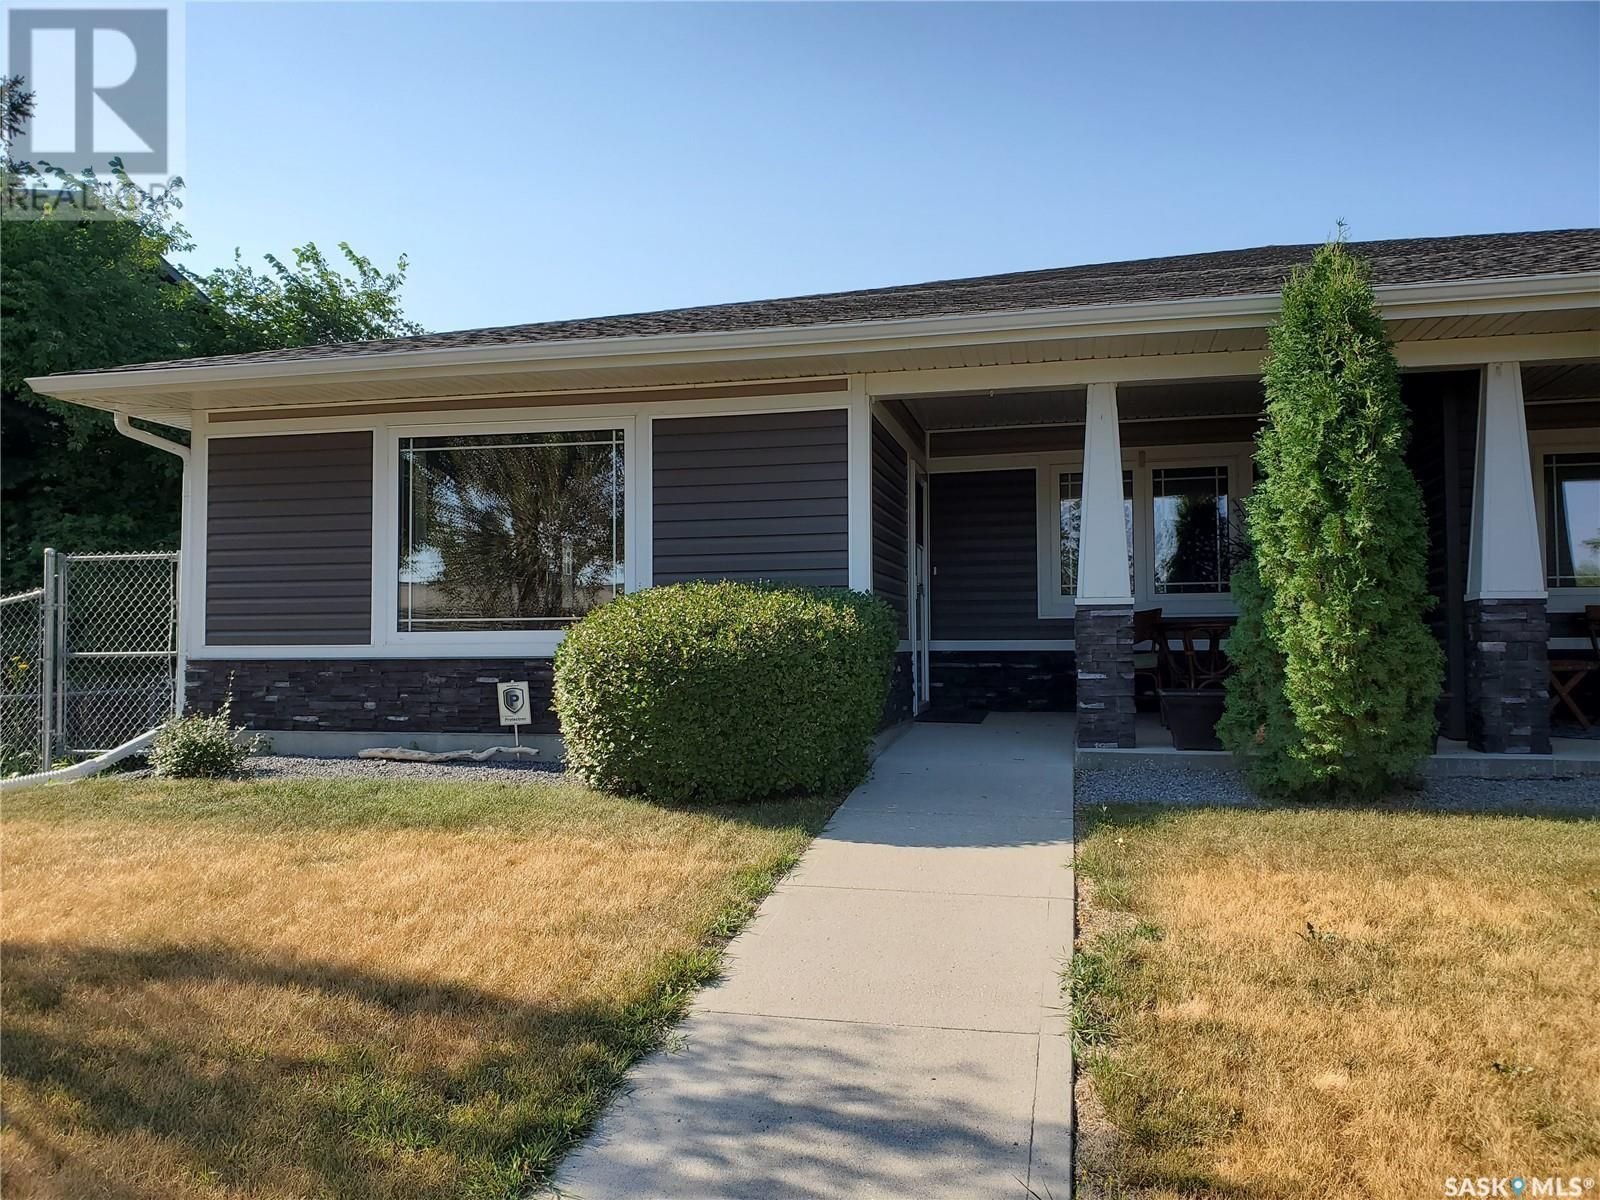 Main Photo: 561 9th ST E in Prince Albert: House for sale : MLS®# SK845117